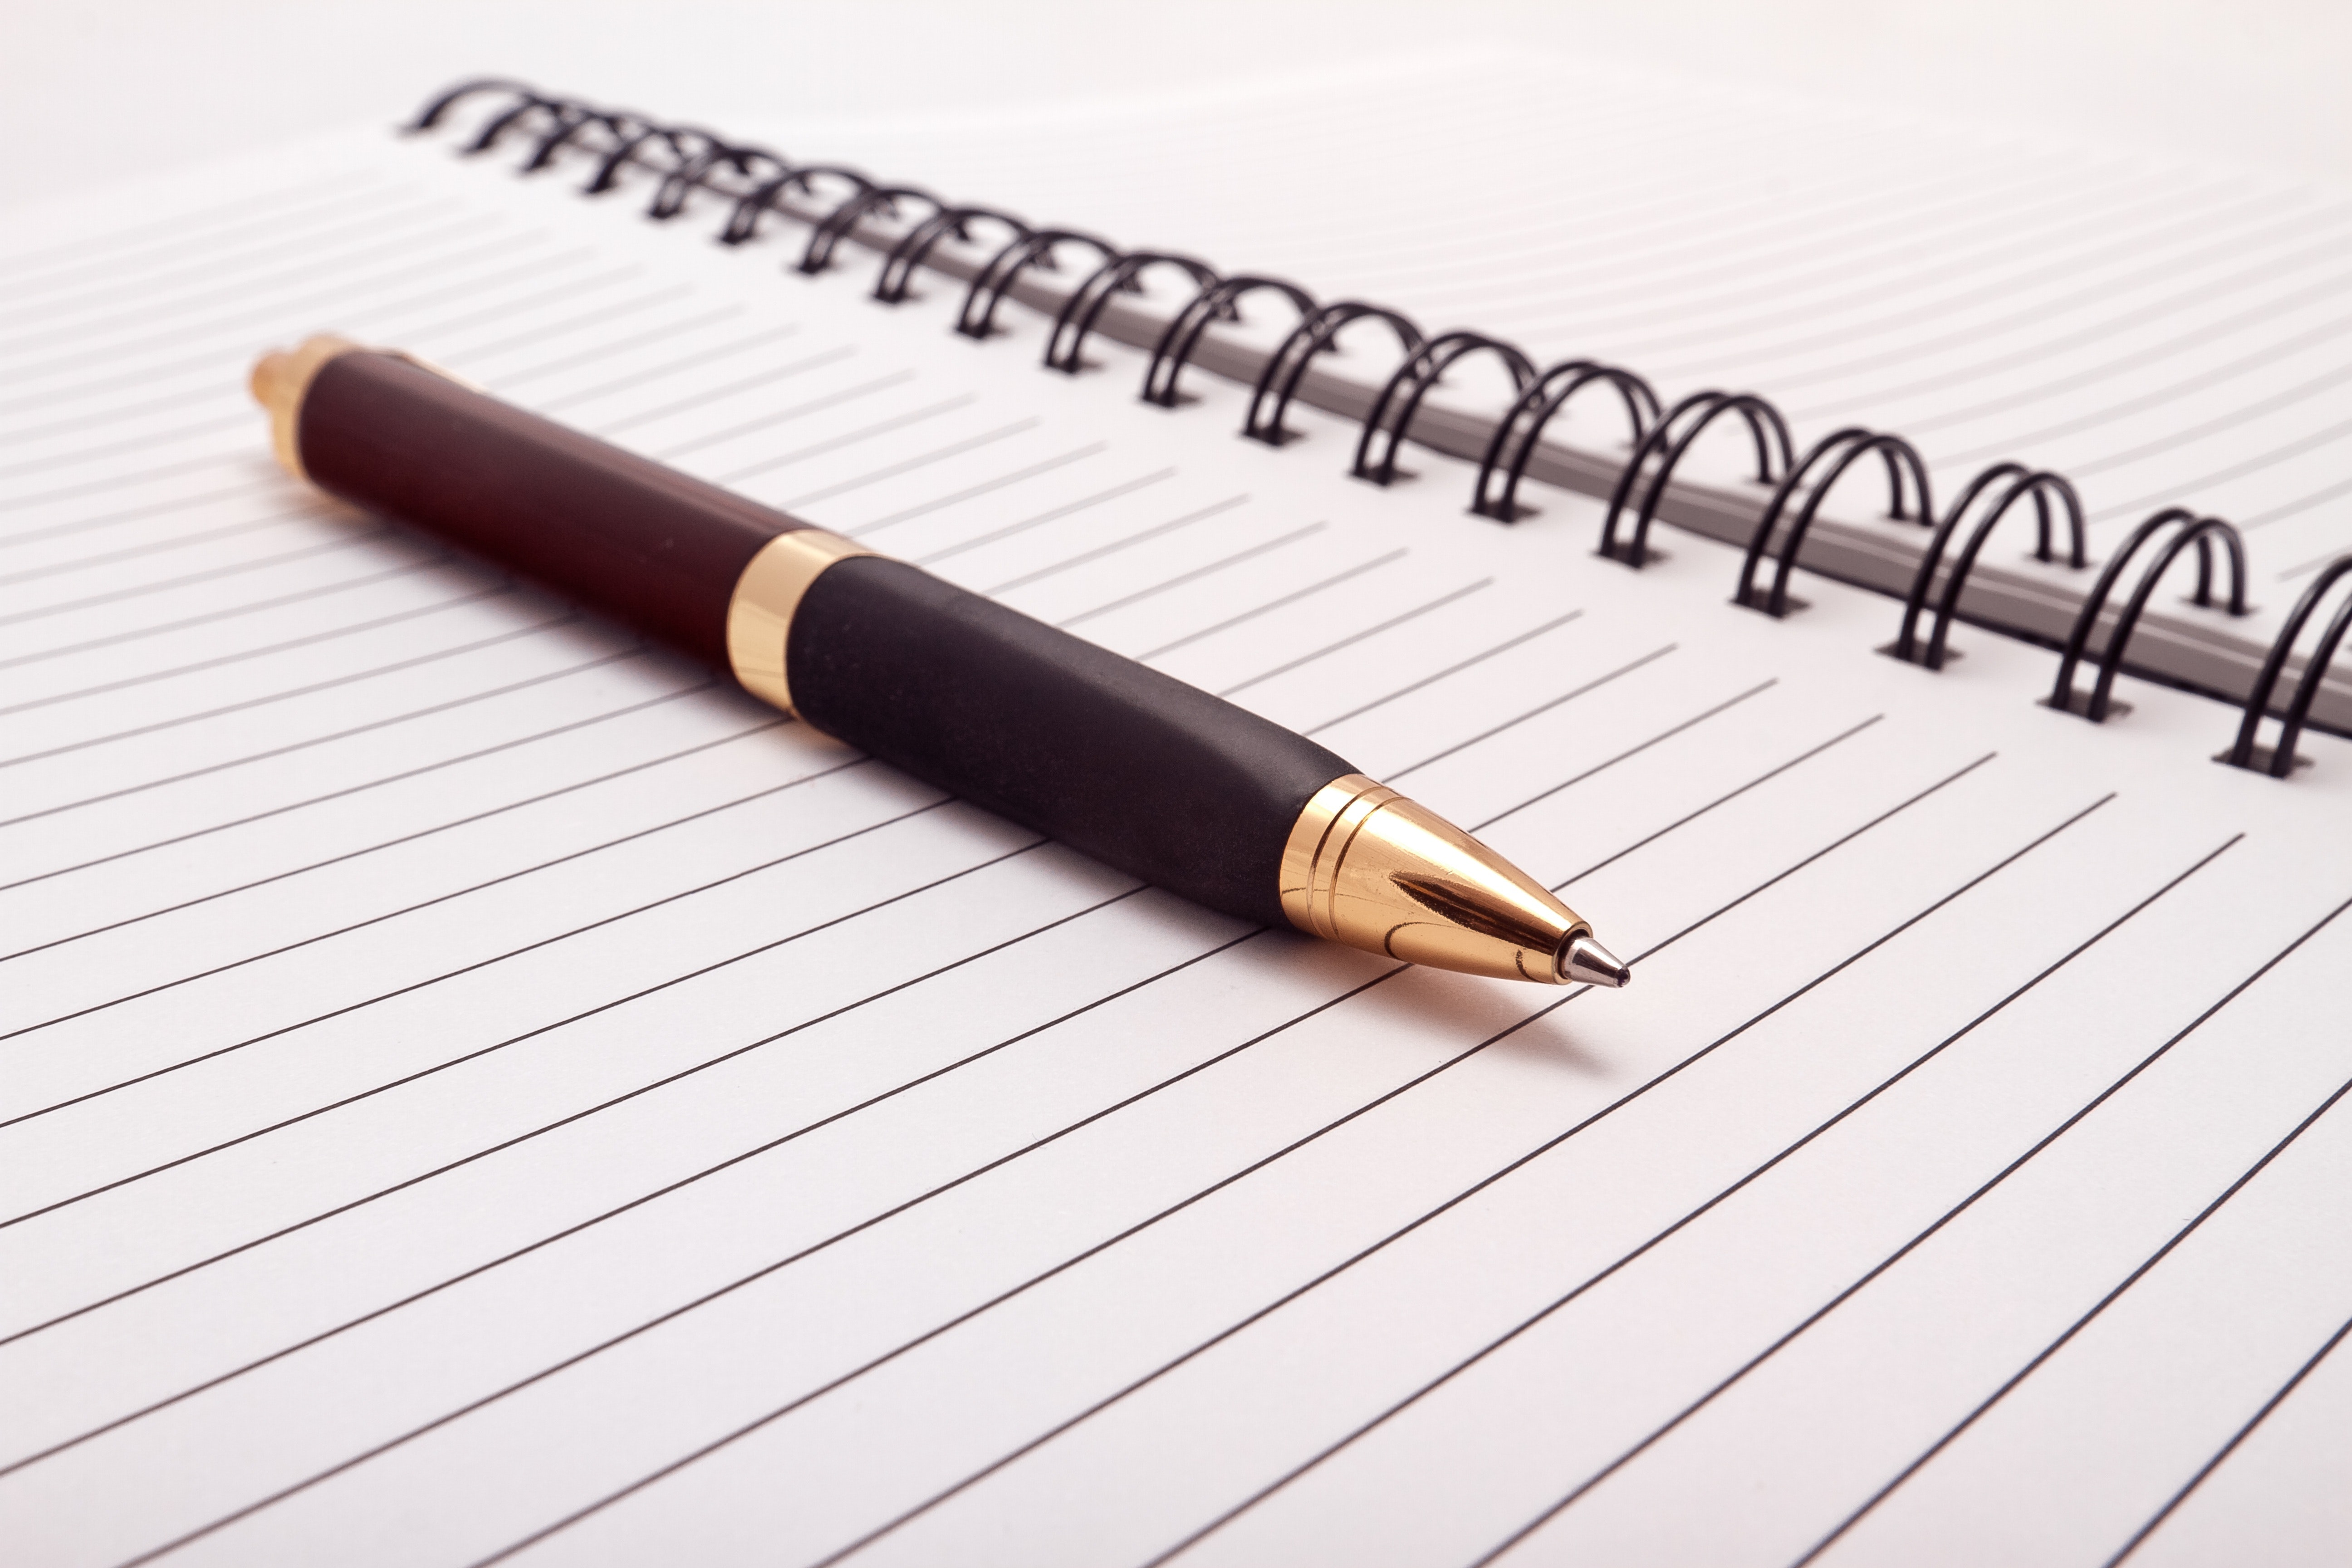 Stock photo of a blank, lined, spiral-bound notebook, open and with a fancy pen sitting on top of it